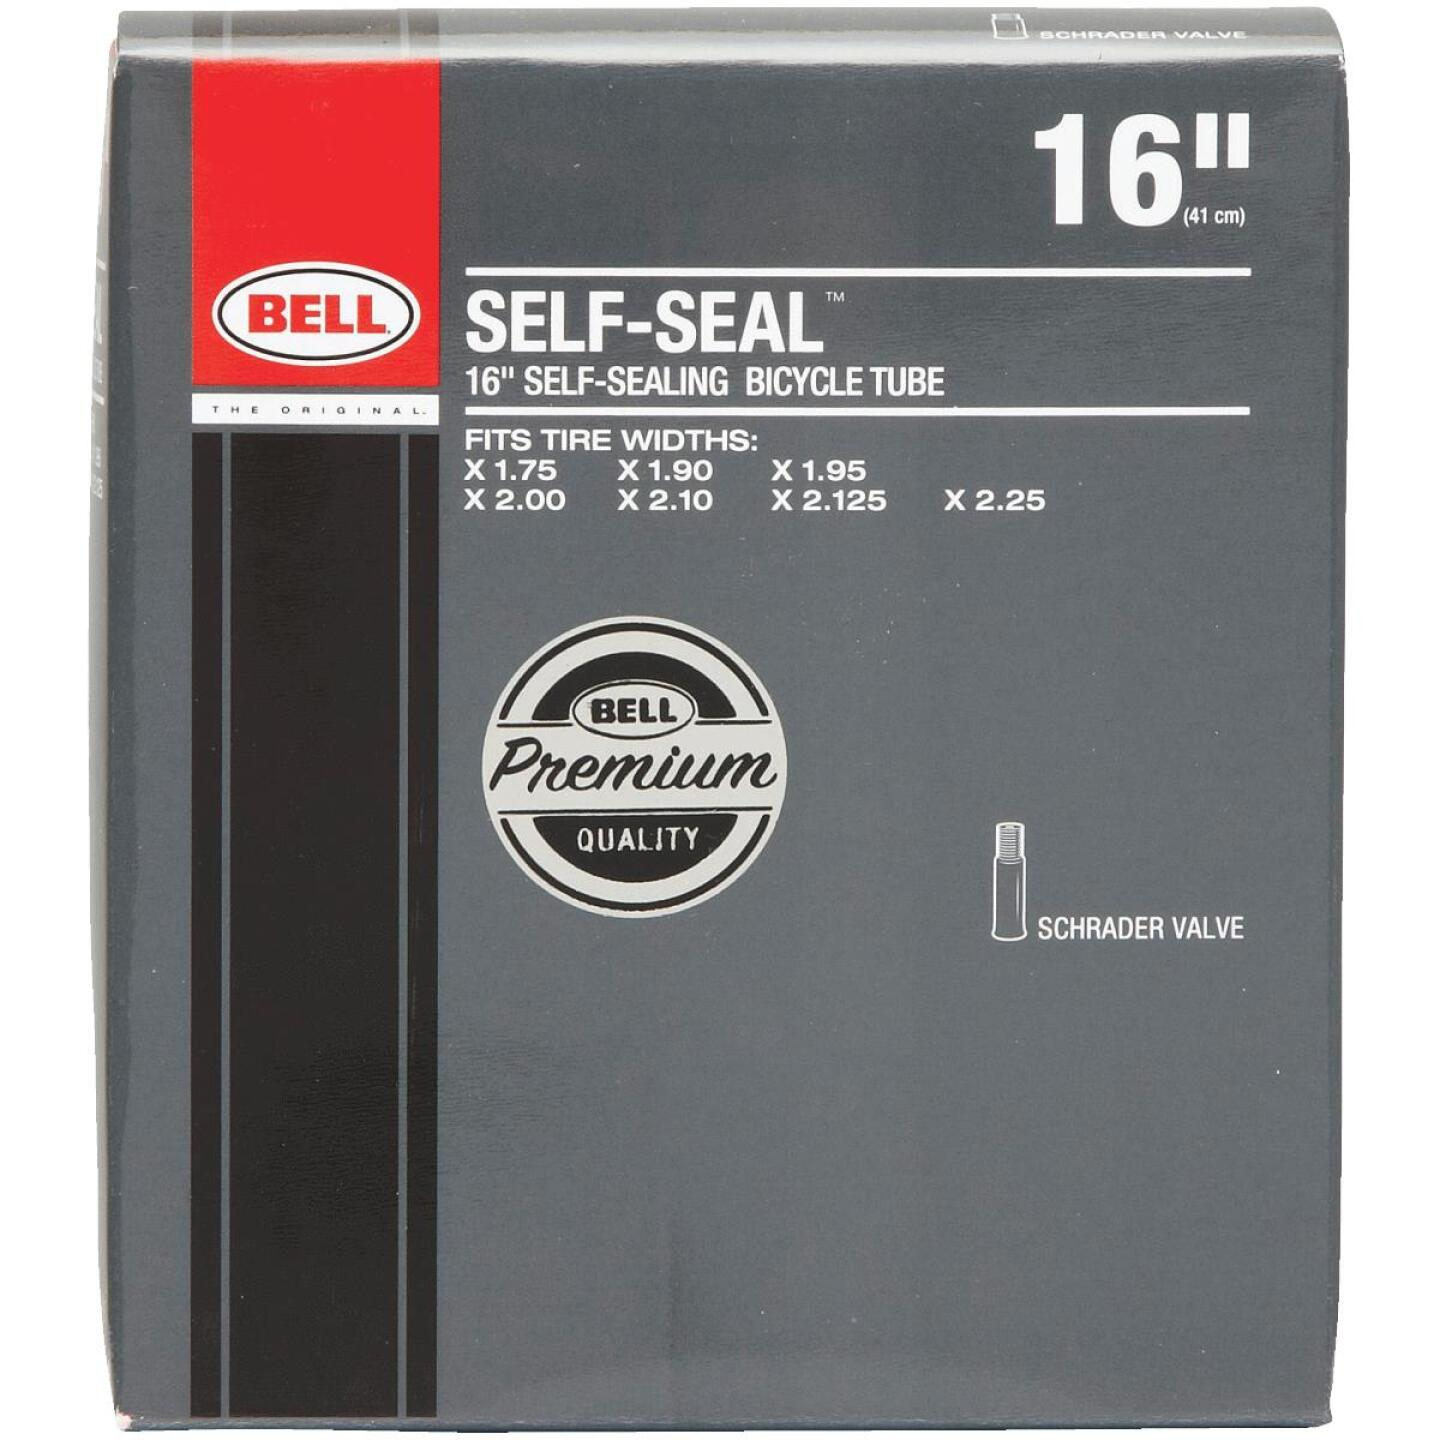 Bell Sports 16 In. Self-Sealing Bicycle Tube Image 2